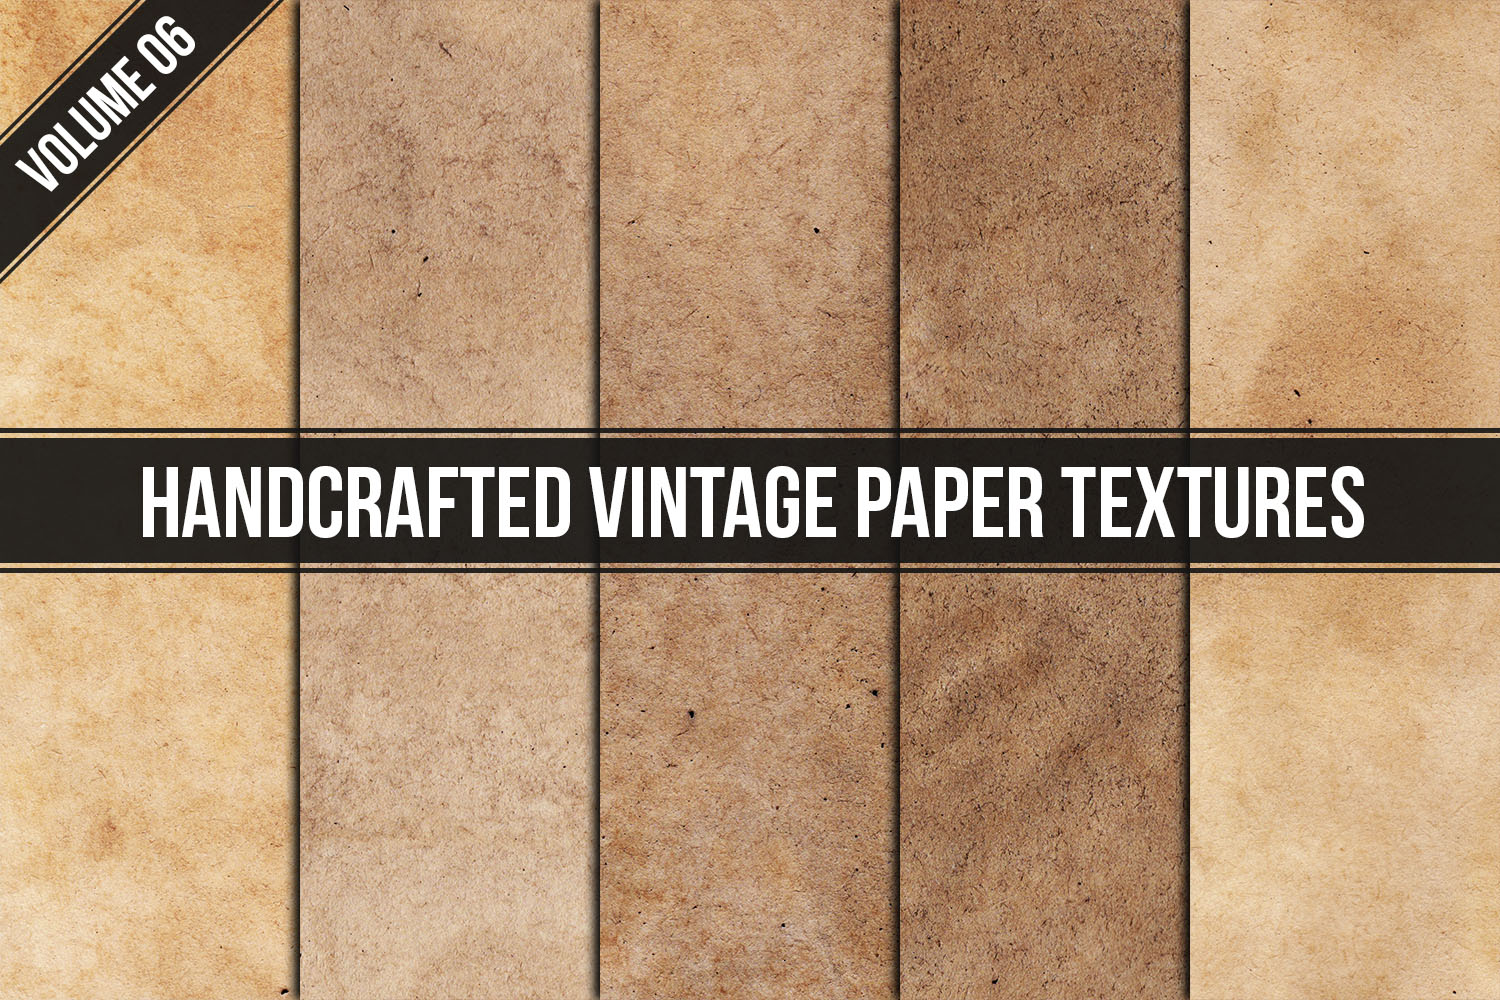 Handcrafted Vintage Paper Textures Vol. 06 example image 1